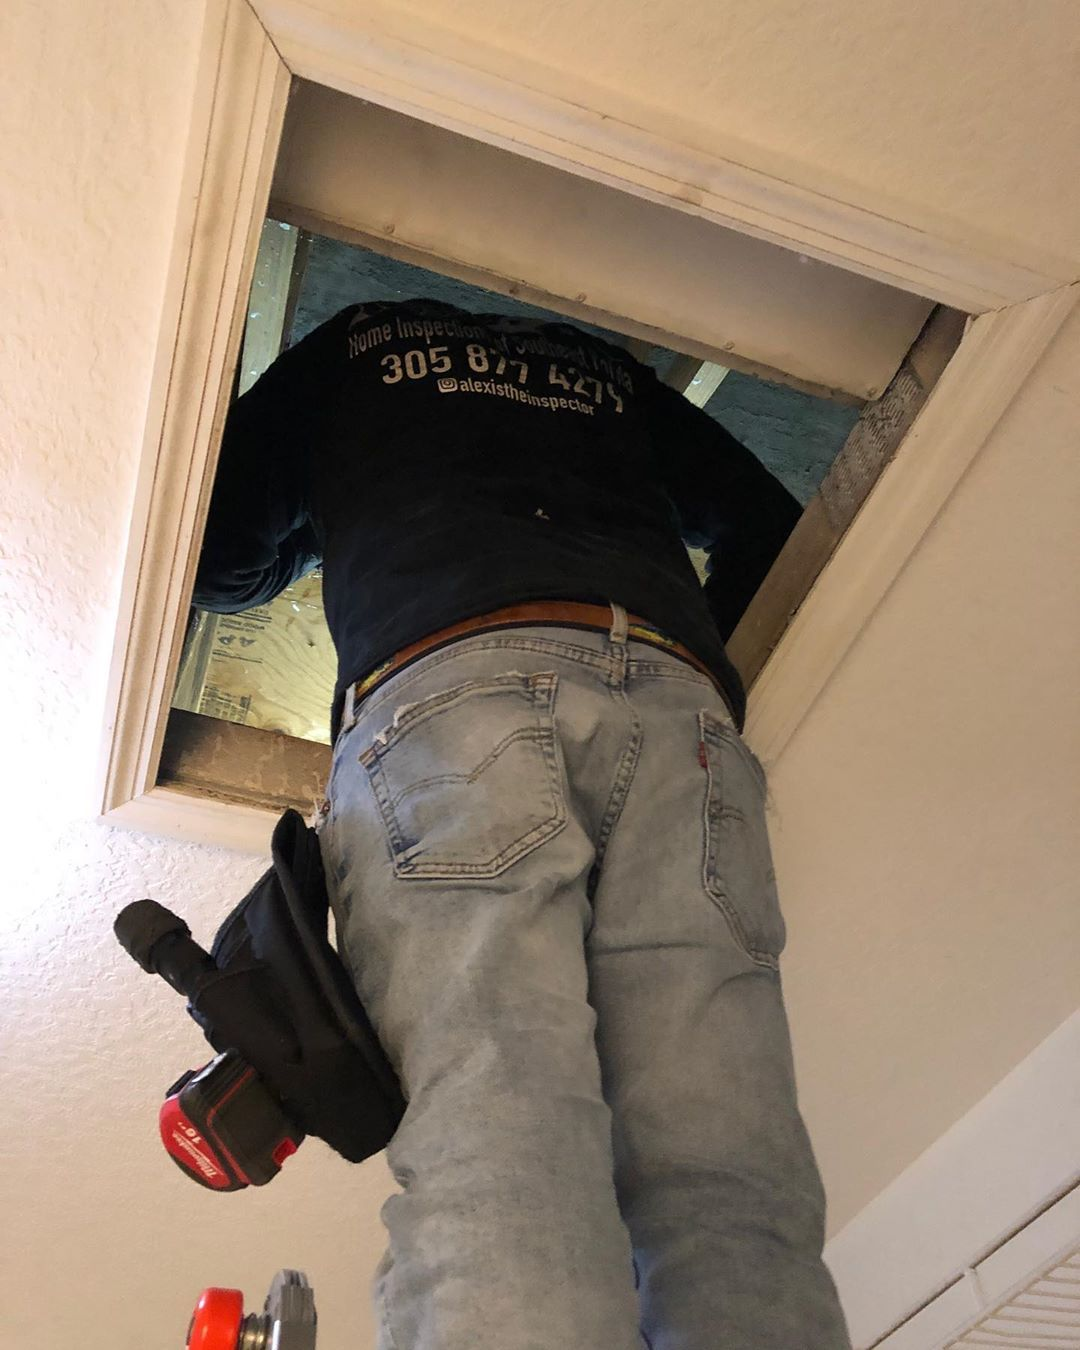 Every attic needs to be inspected call us for your next